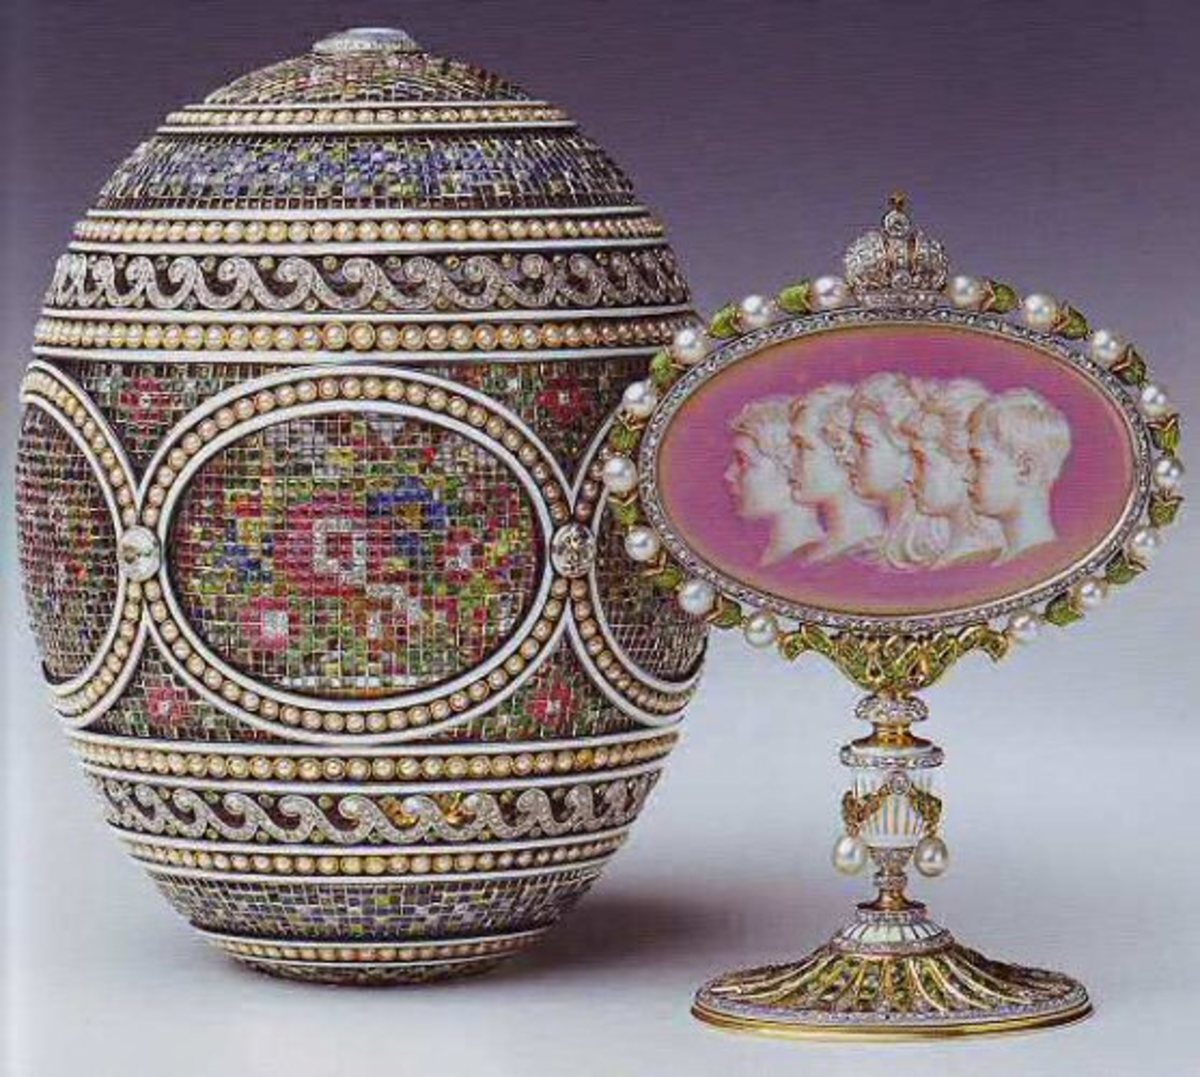 The Mosaic Egg -1914